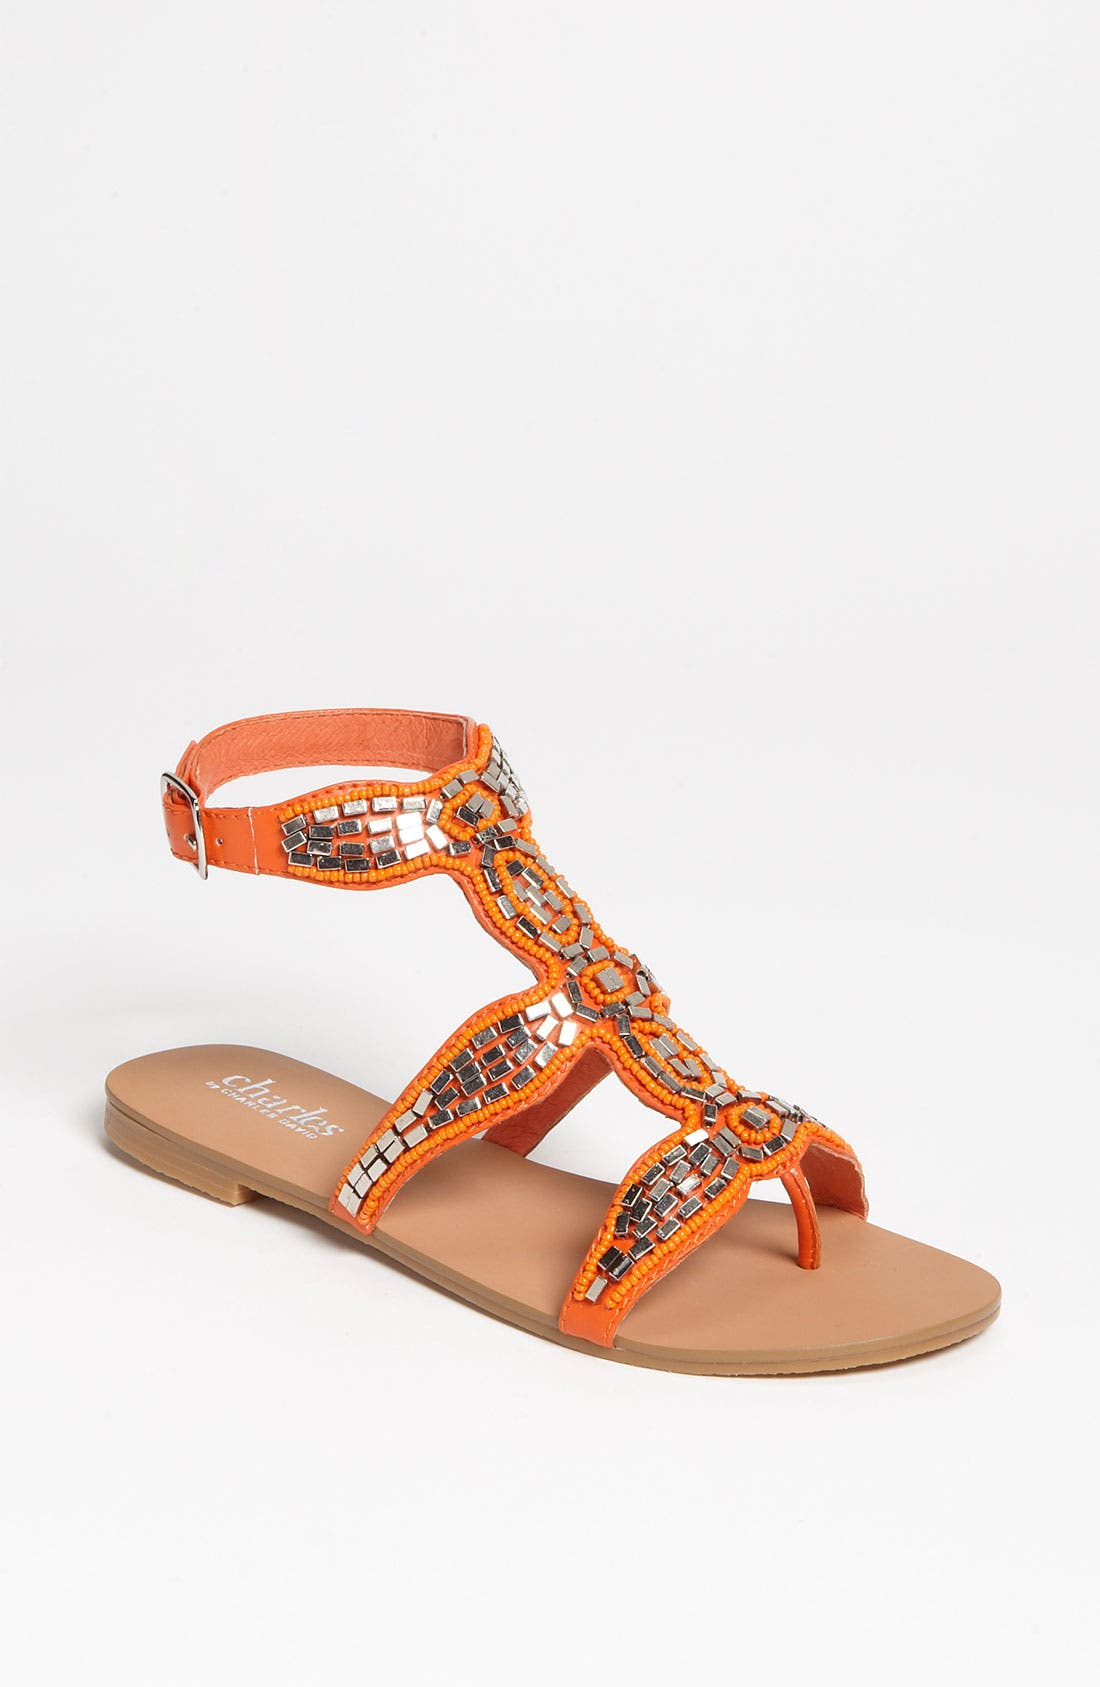 Alternate Image 1 Selected - Charles by Charles David 'Plata' Sandal